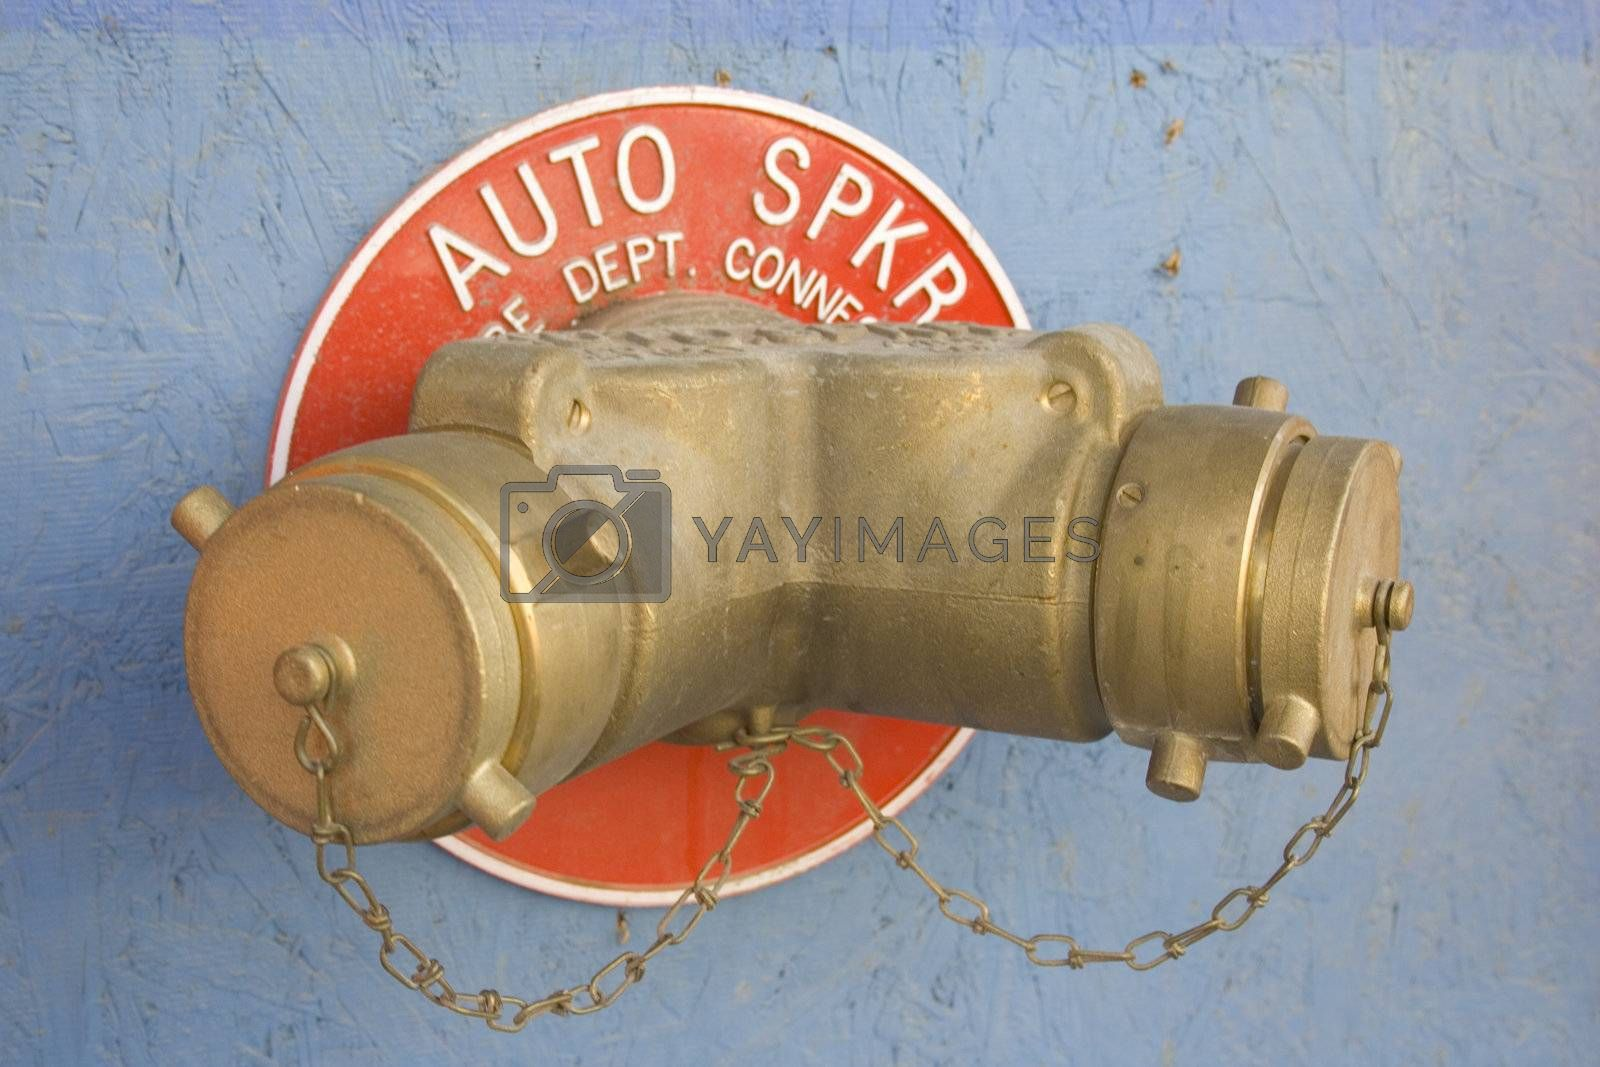 A fire department water valve on a building.